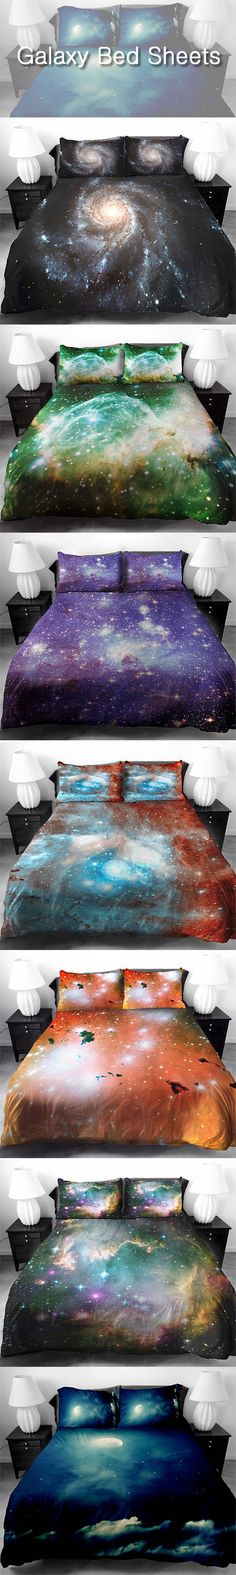 Definitely Eye-catching bed sheets designed by Jail Betray.